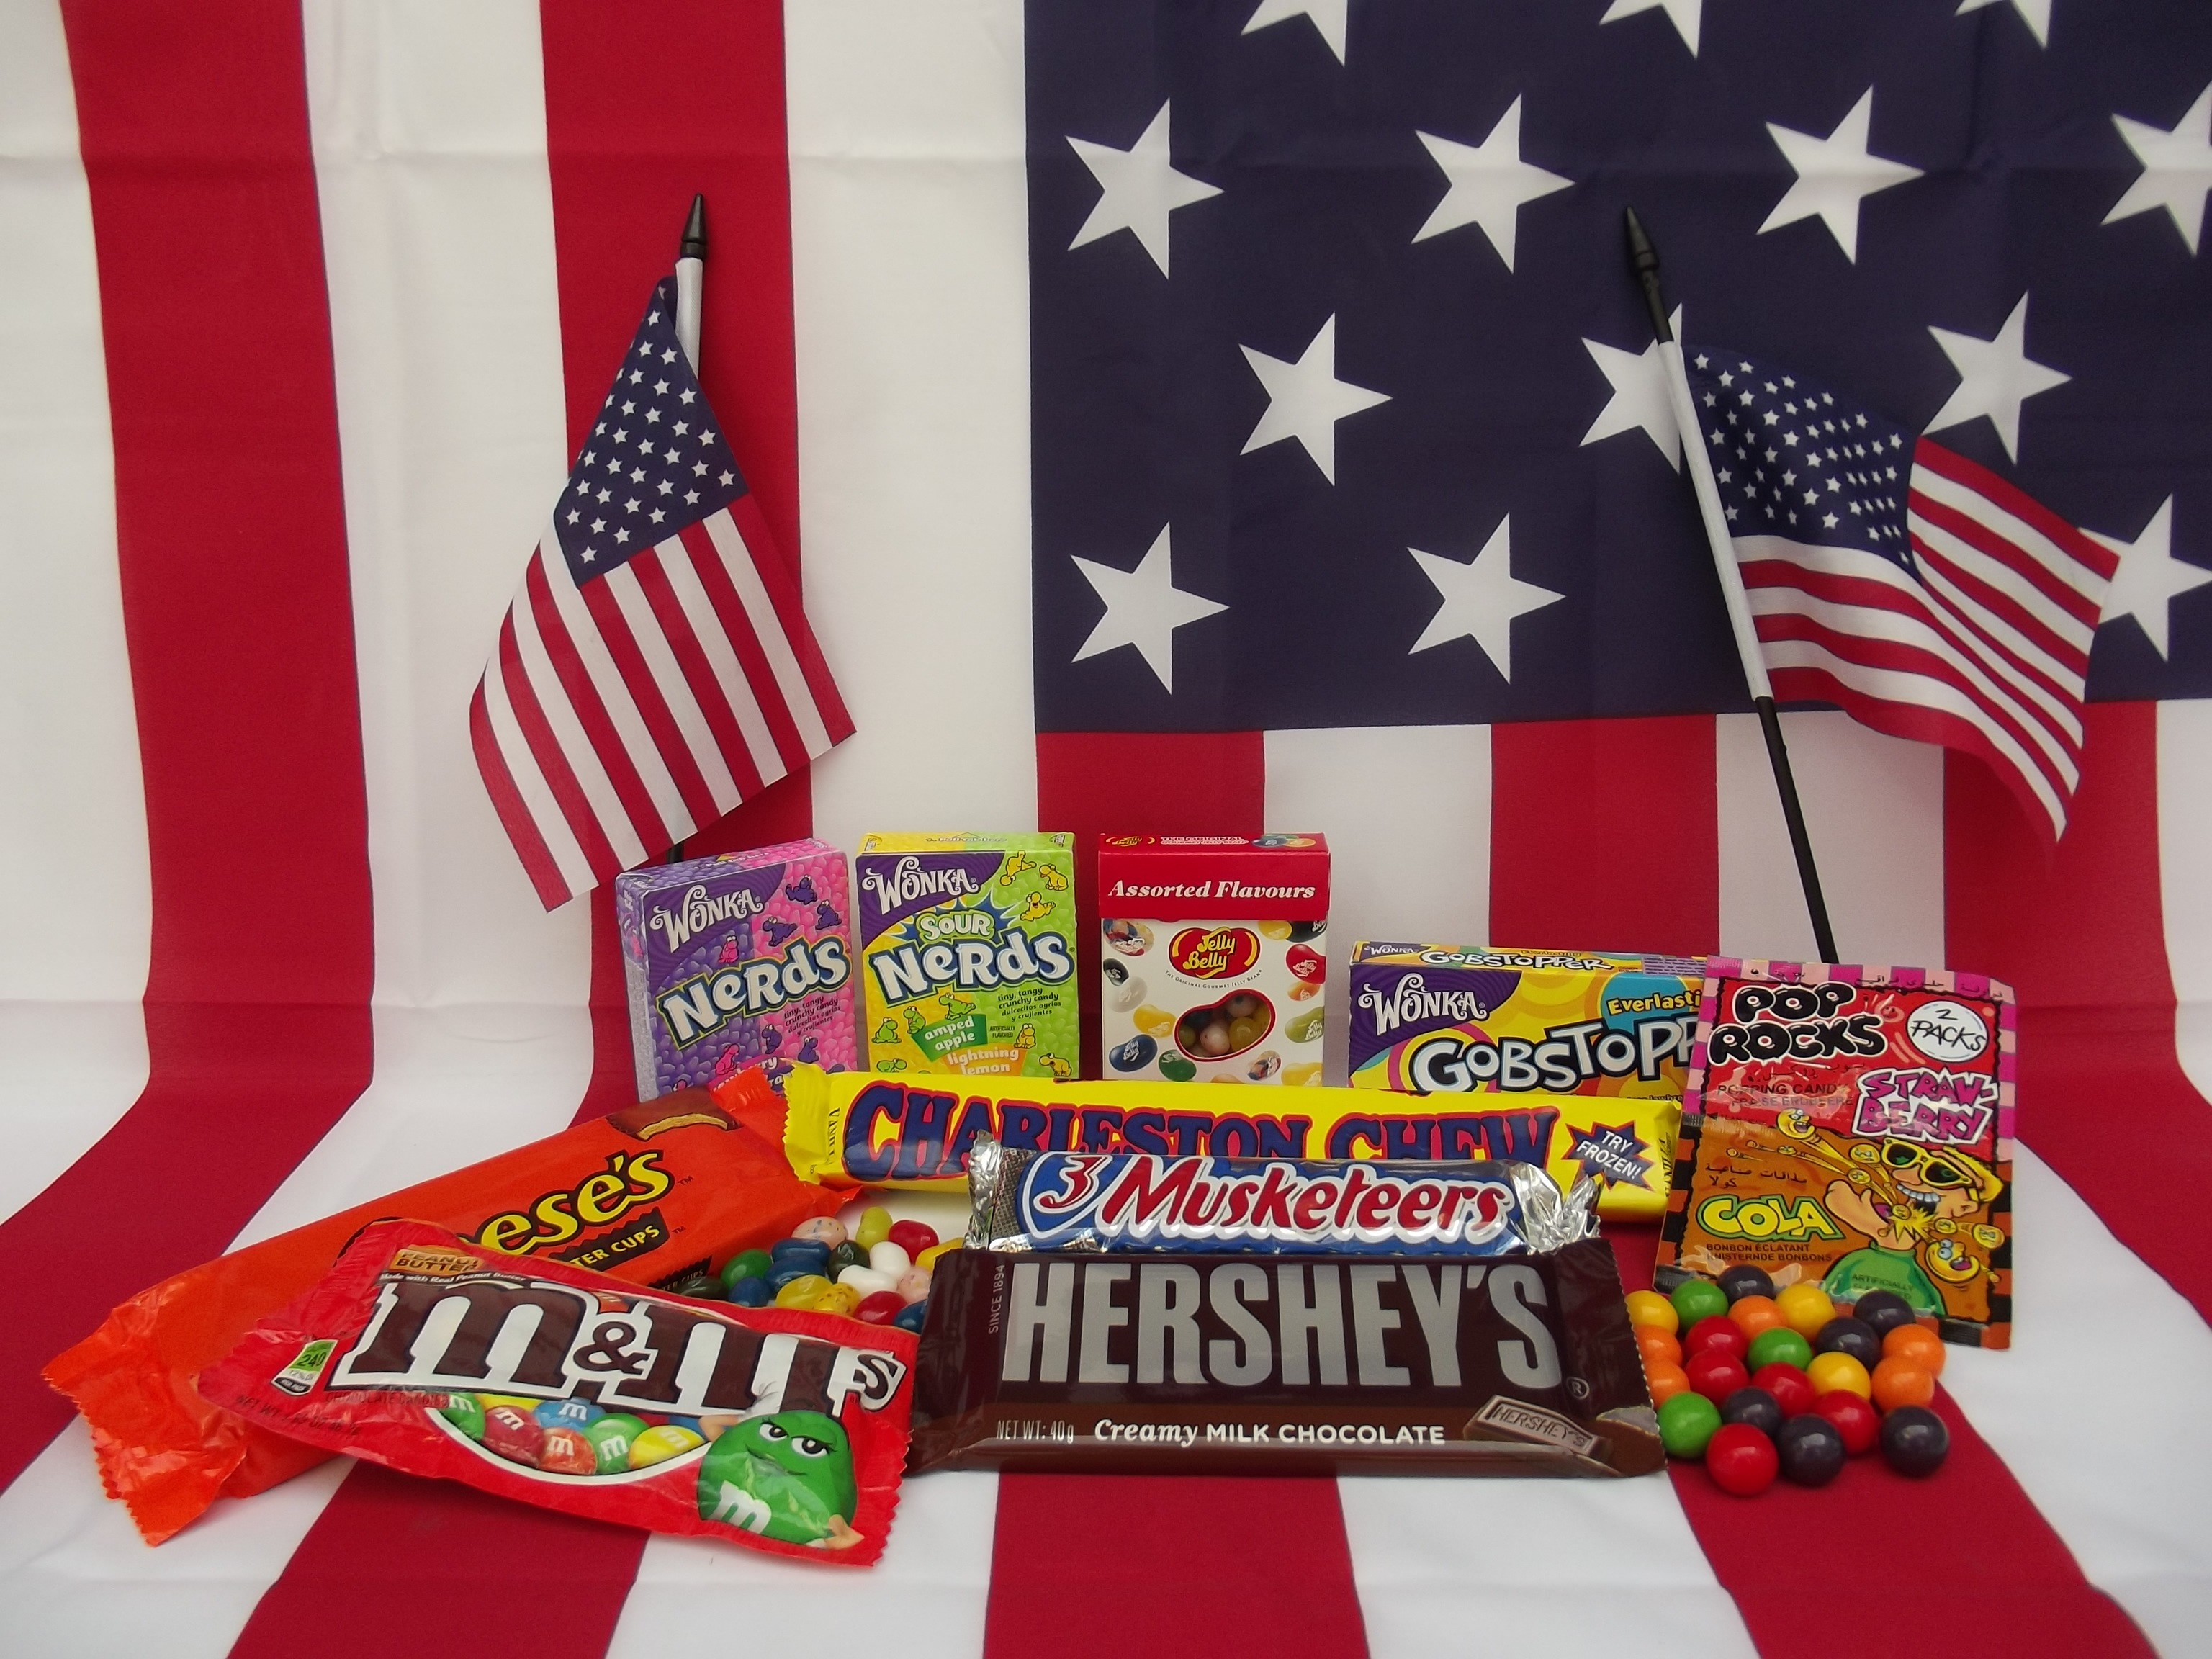 Halloween Fun Fact: The per person consumption of candy by Americans in 2010 was an astounding 24.7 pounds, according to the U.S. Census Bureau.